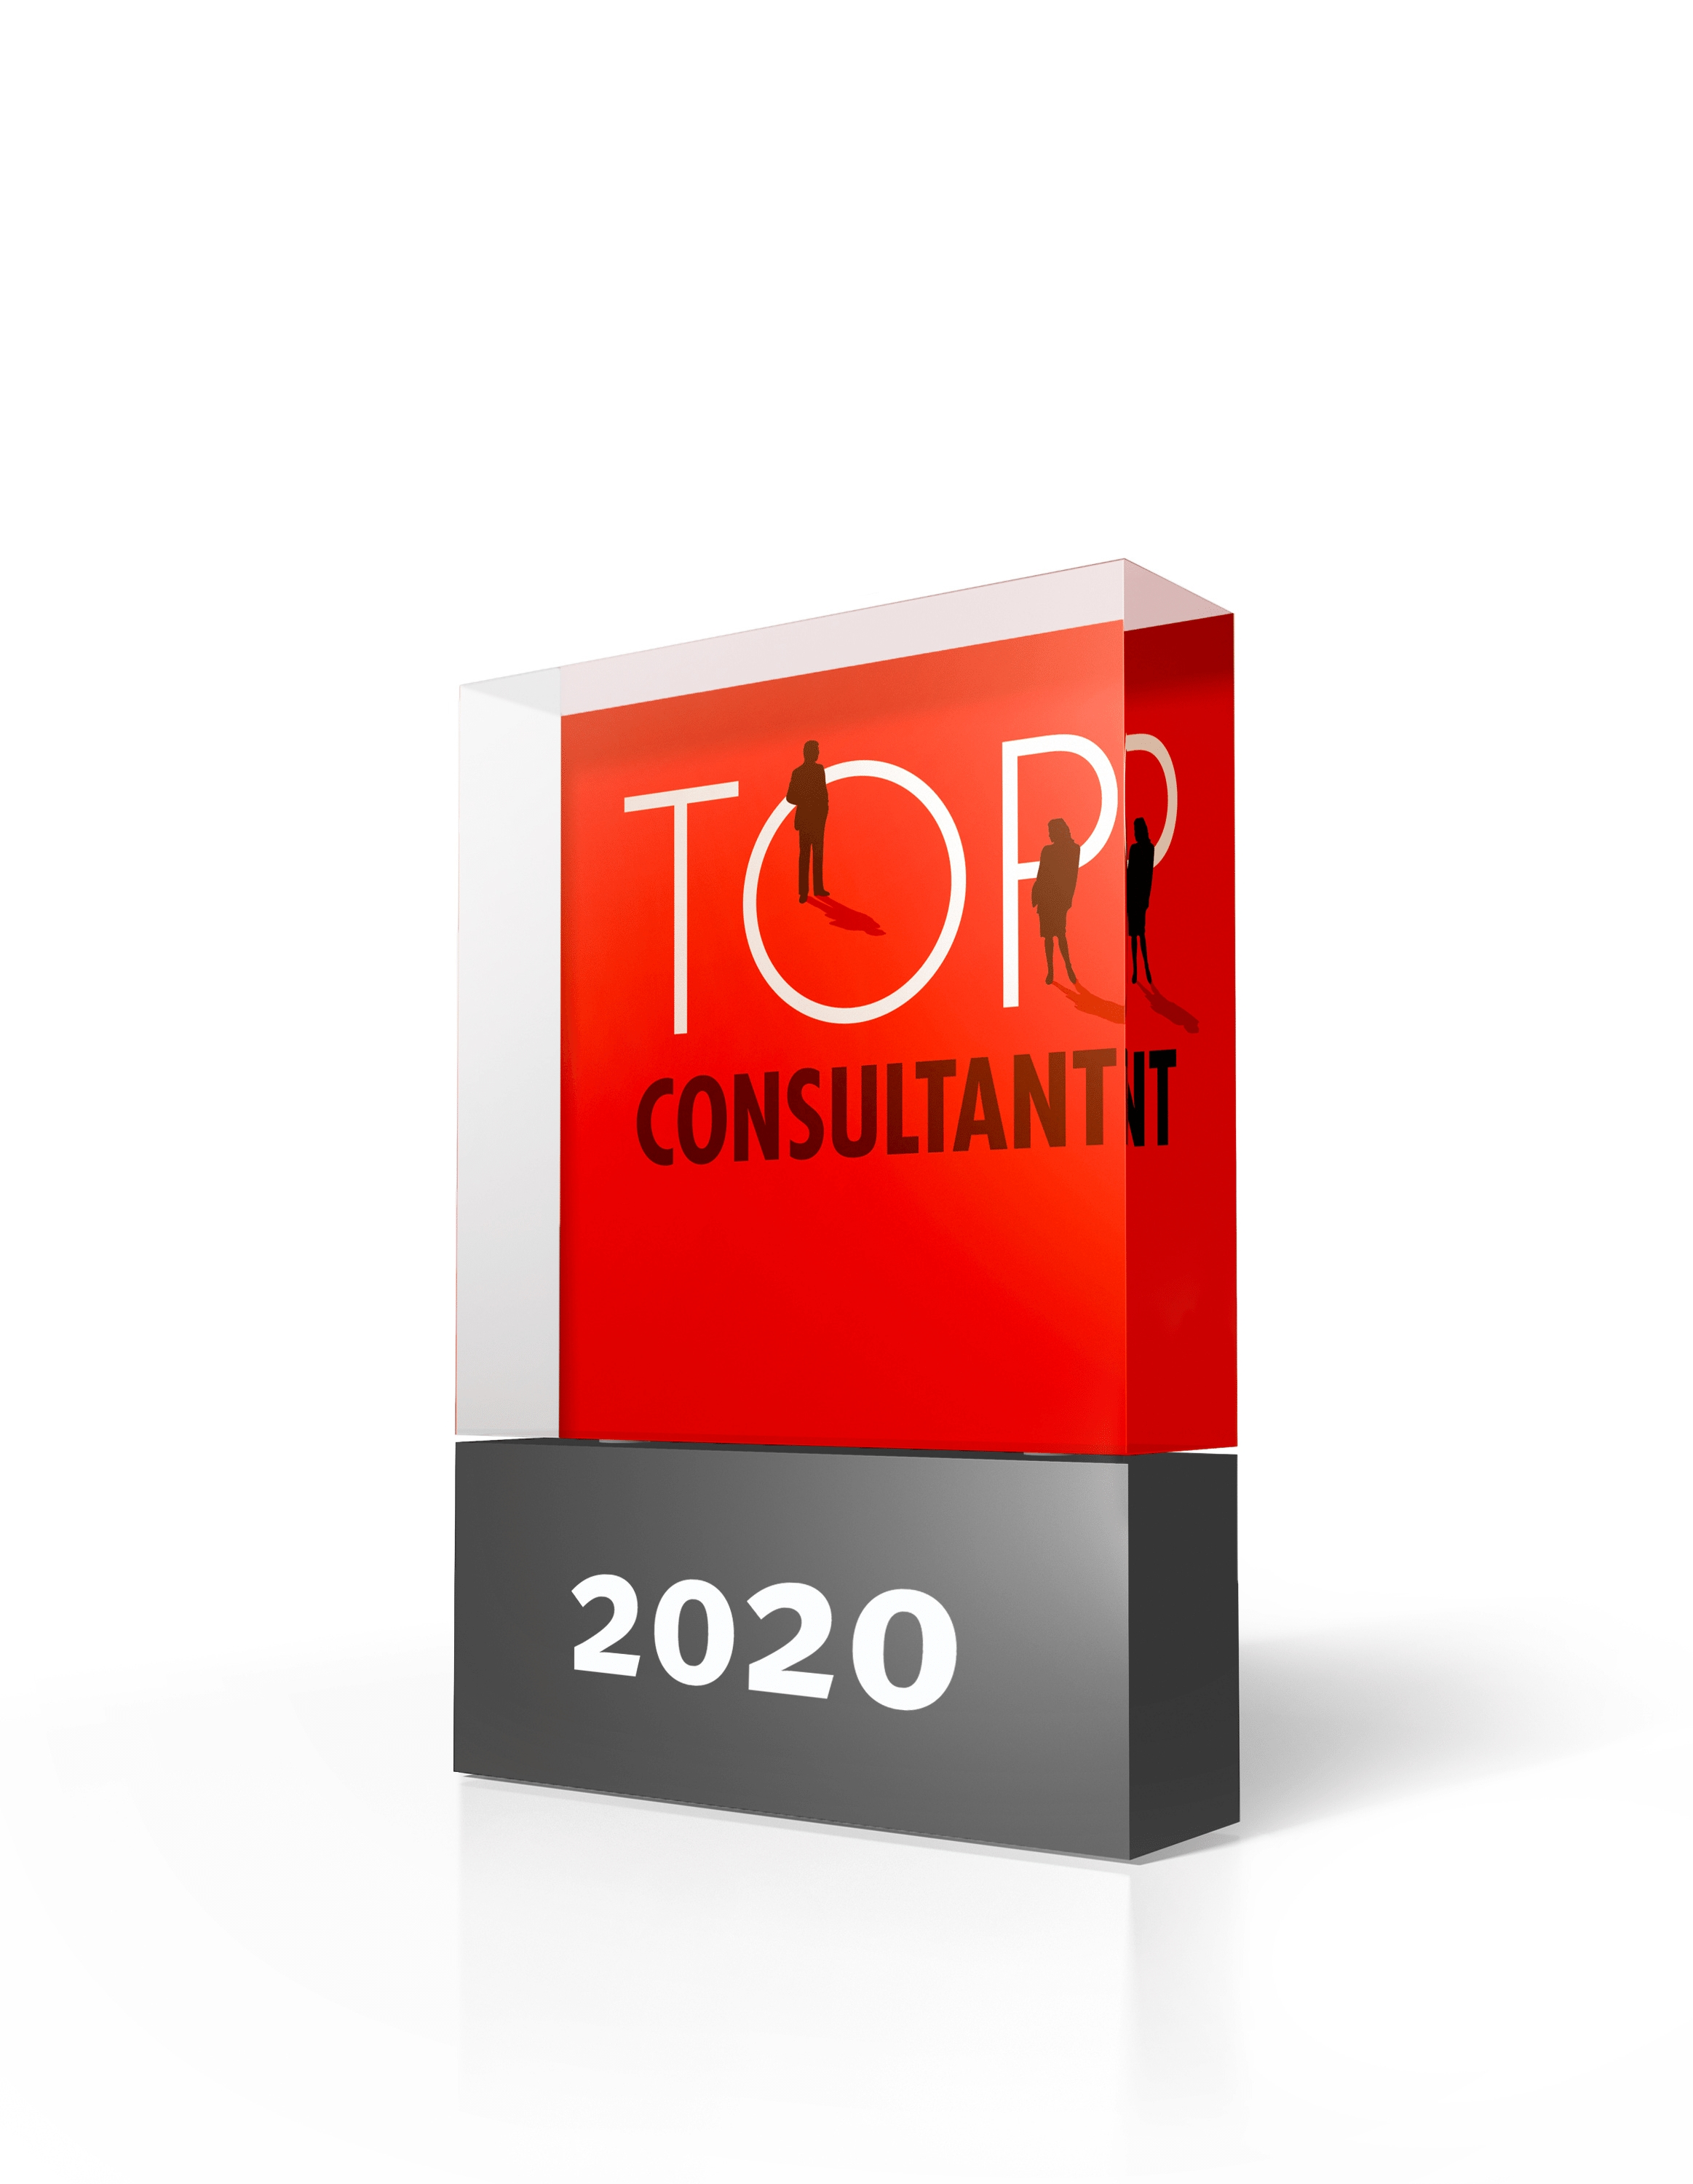 TOP CONSULTANT Award 2020